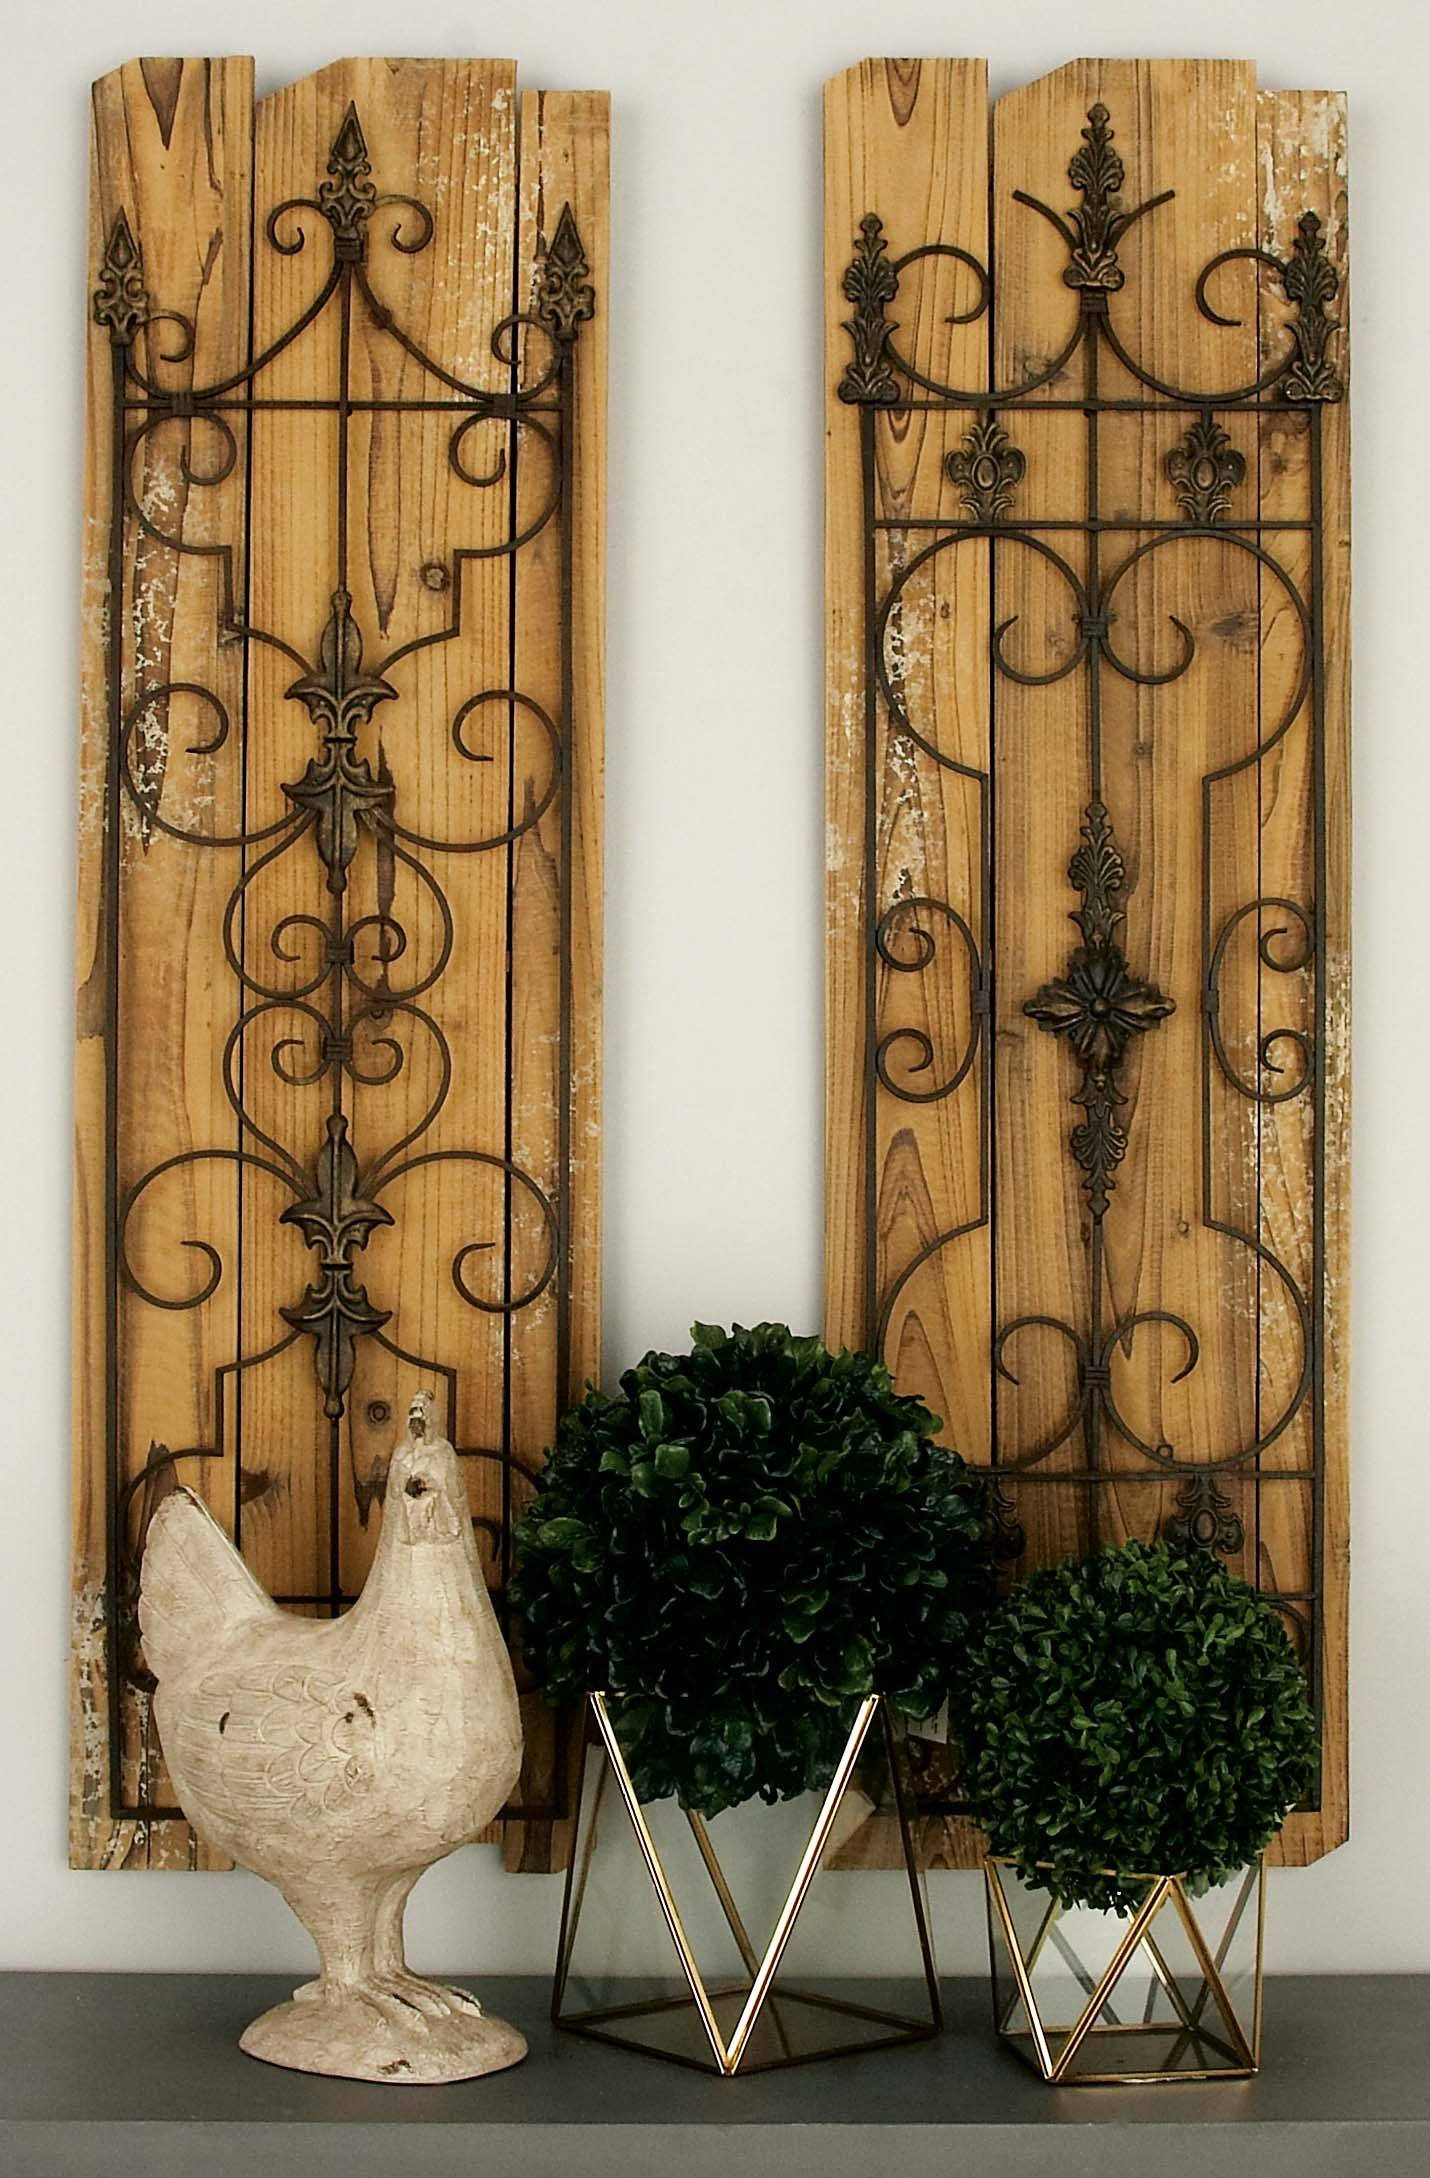 Deco 79 Enchanting Wooded Gate Wall Plaque by Deco 79